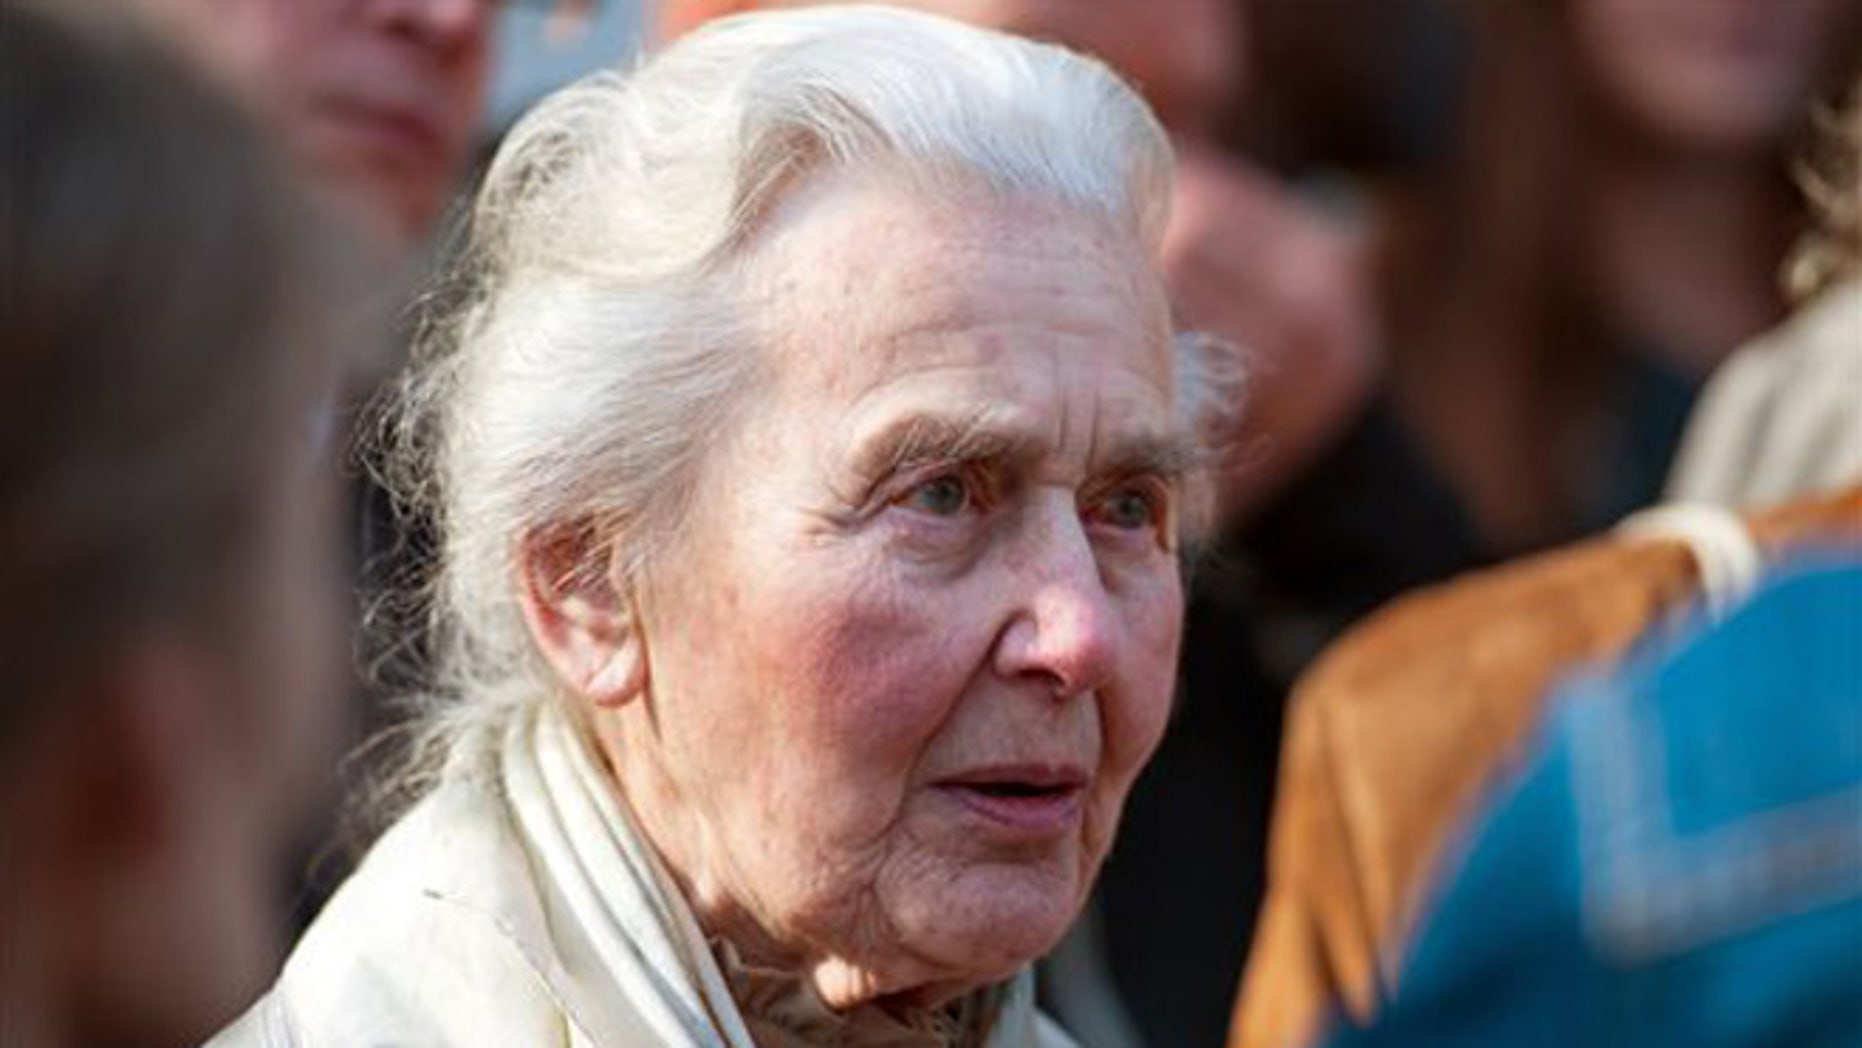 """A German court jailed 87-year-old """"Nazi grandma"""" Ursula Haverbeck for denying the Holocaust. (Associated Press)"""